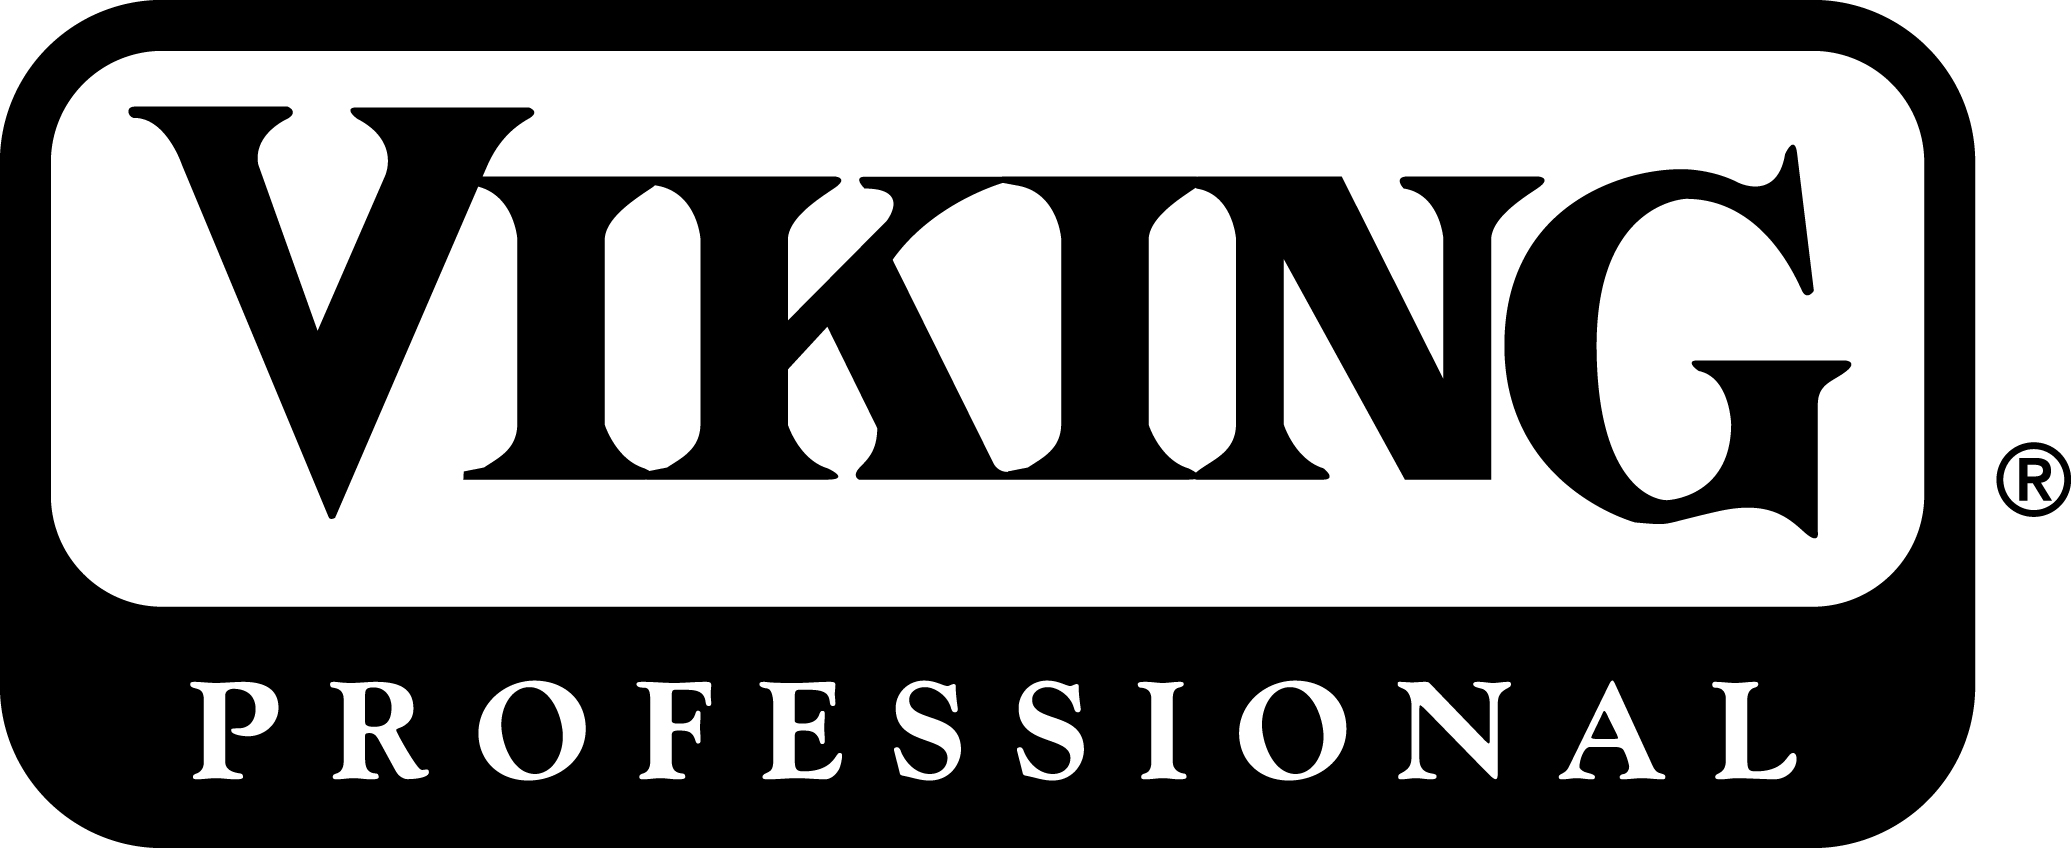 Viking Oven Repair Company, KitchenAid Oven Repair